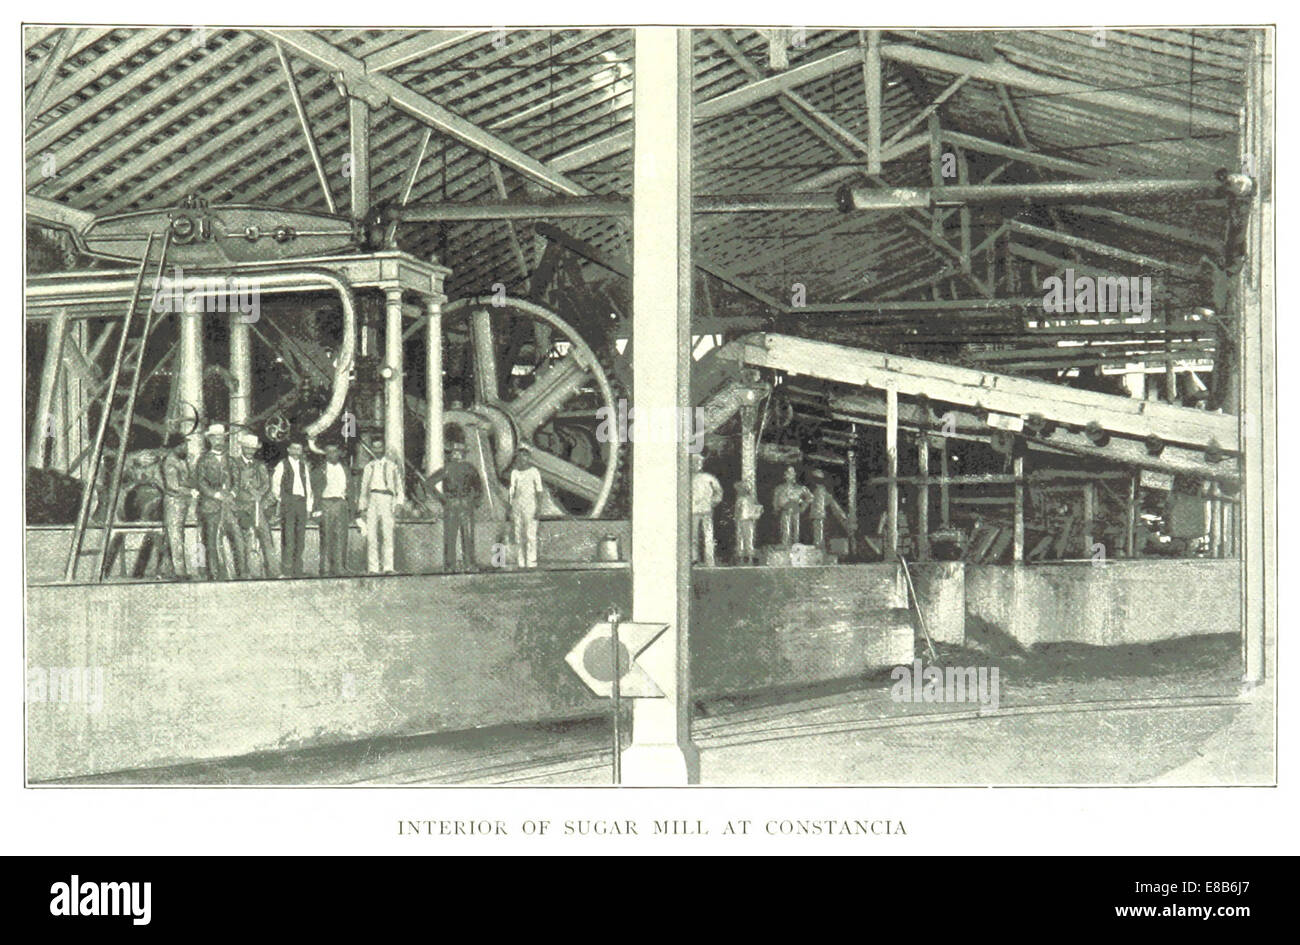 Clark(1899) Kuba p283 - INTERIEUR von A SUGAR MILL in CONSTANCIA Stockbild